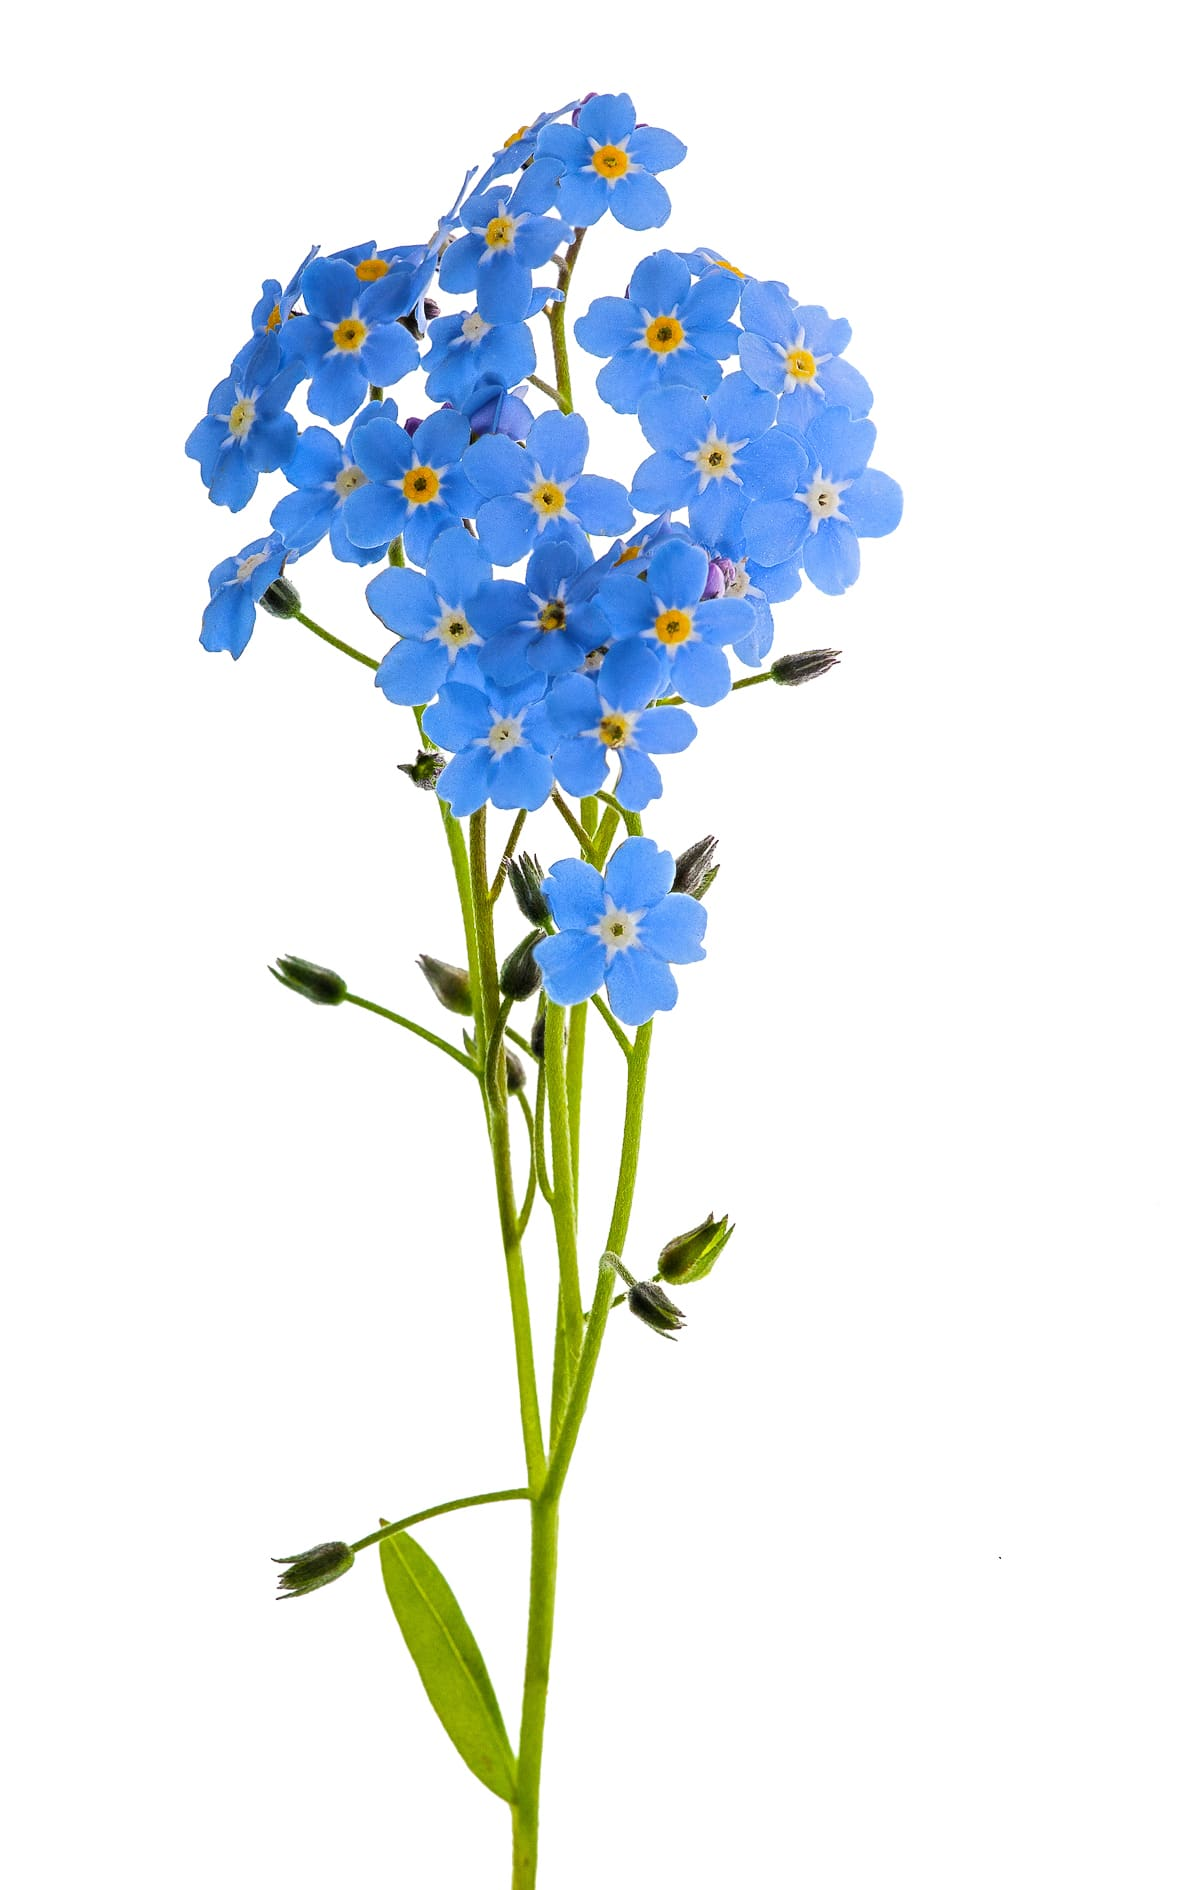 Bright vibrant corn flower blue forget me not flowers isolated against a bright white background